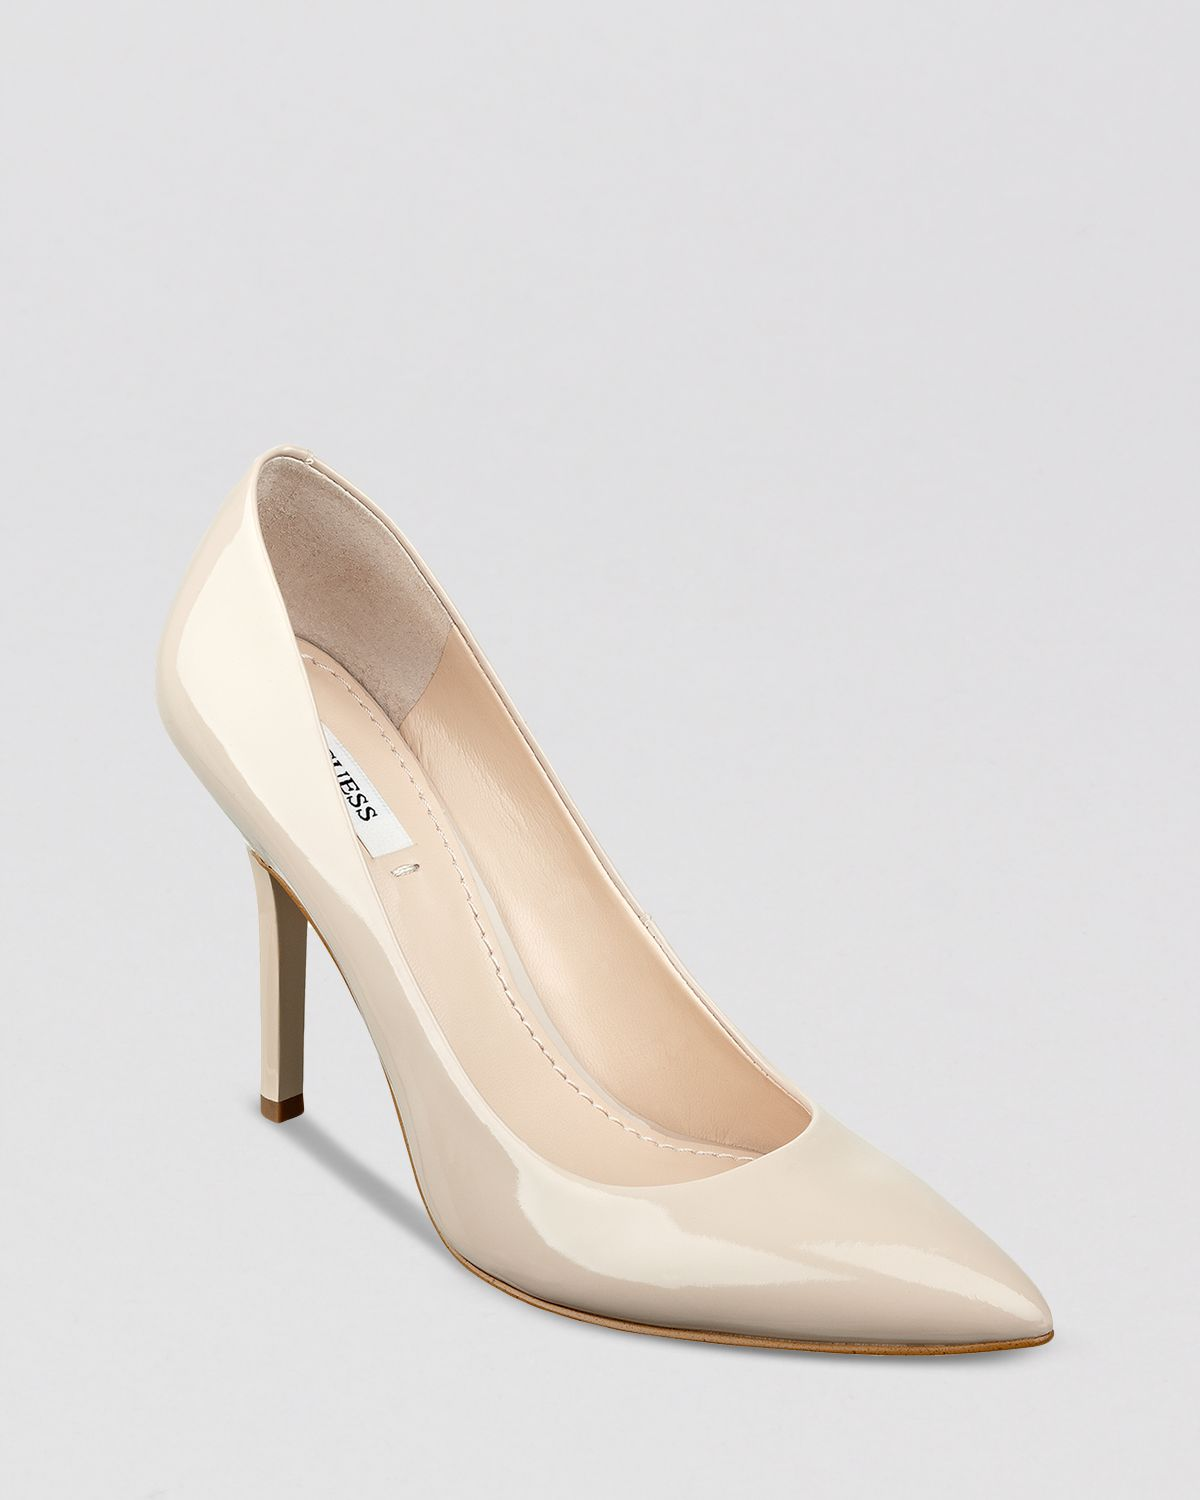 guess pointed toe pumps plasma high heel in white ivory lyst. Black Bedroom Furniture Sets. Home Design Ideas